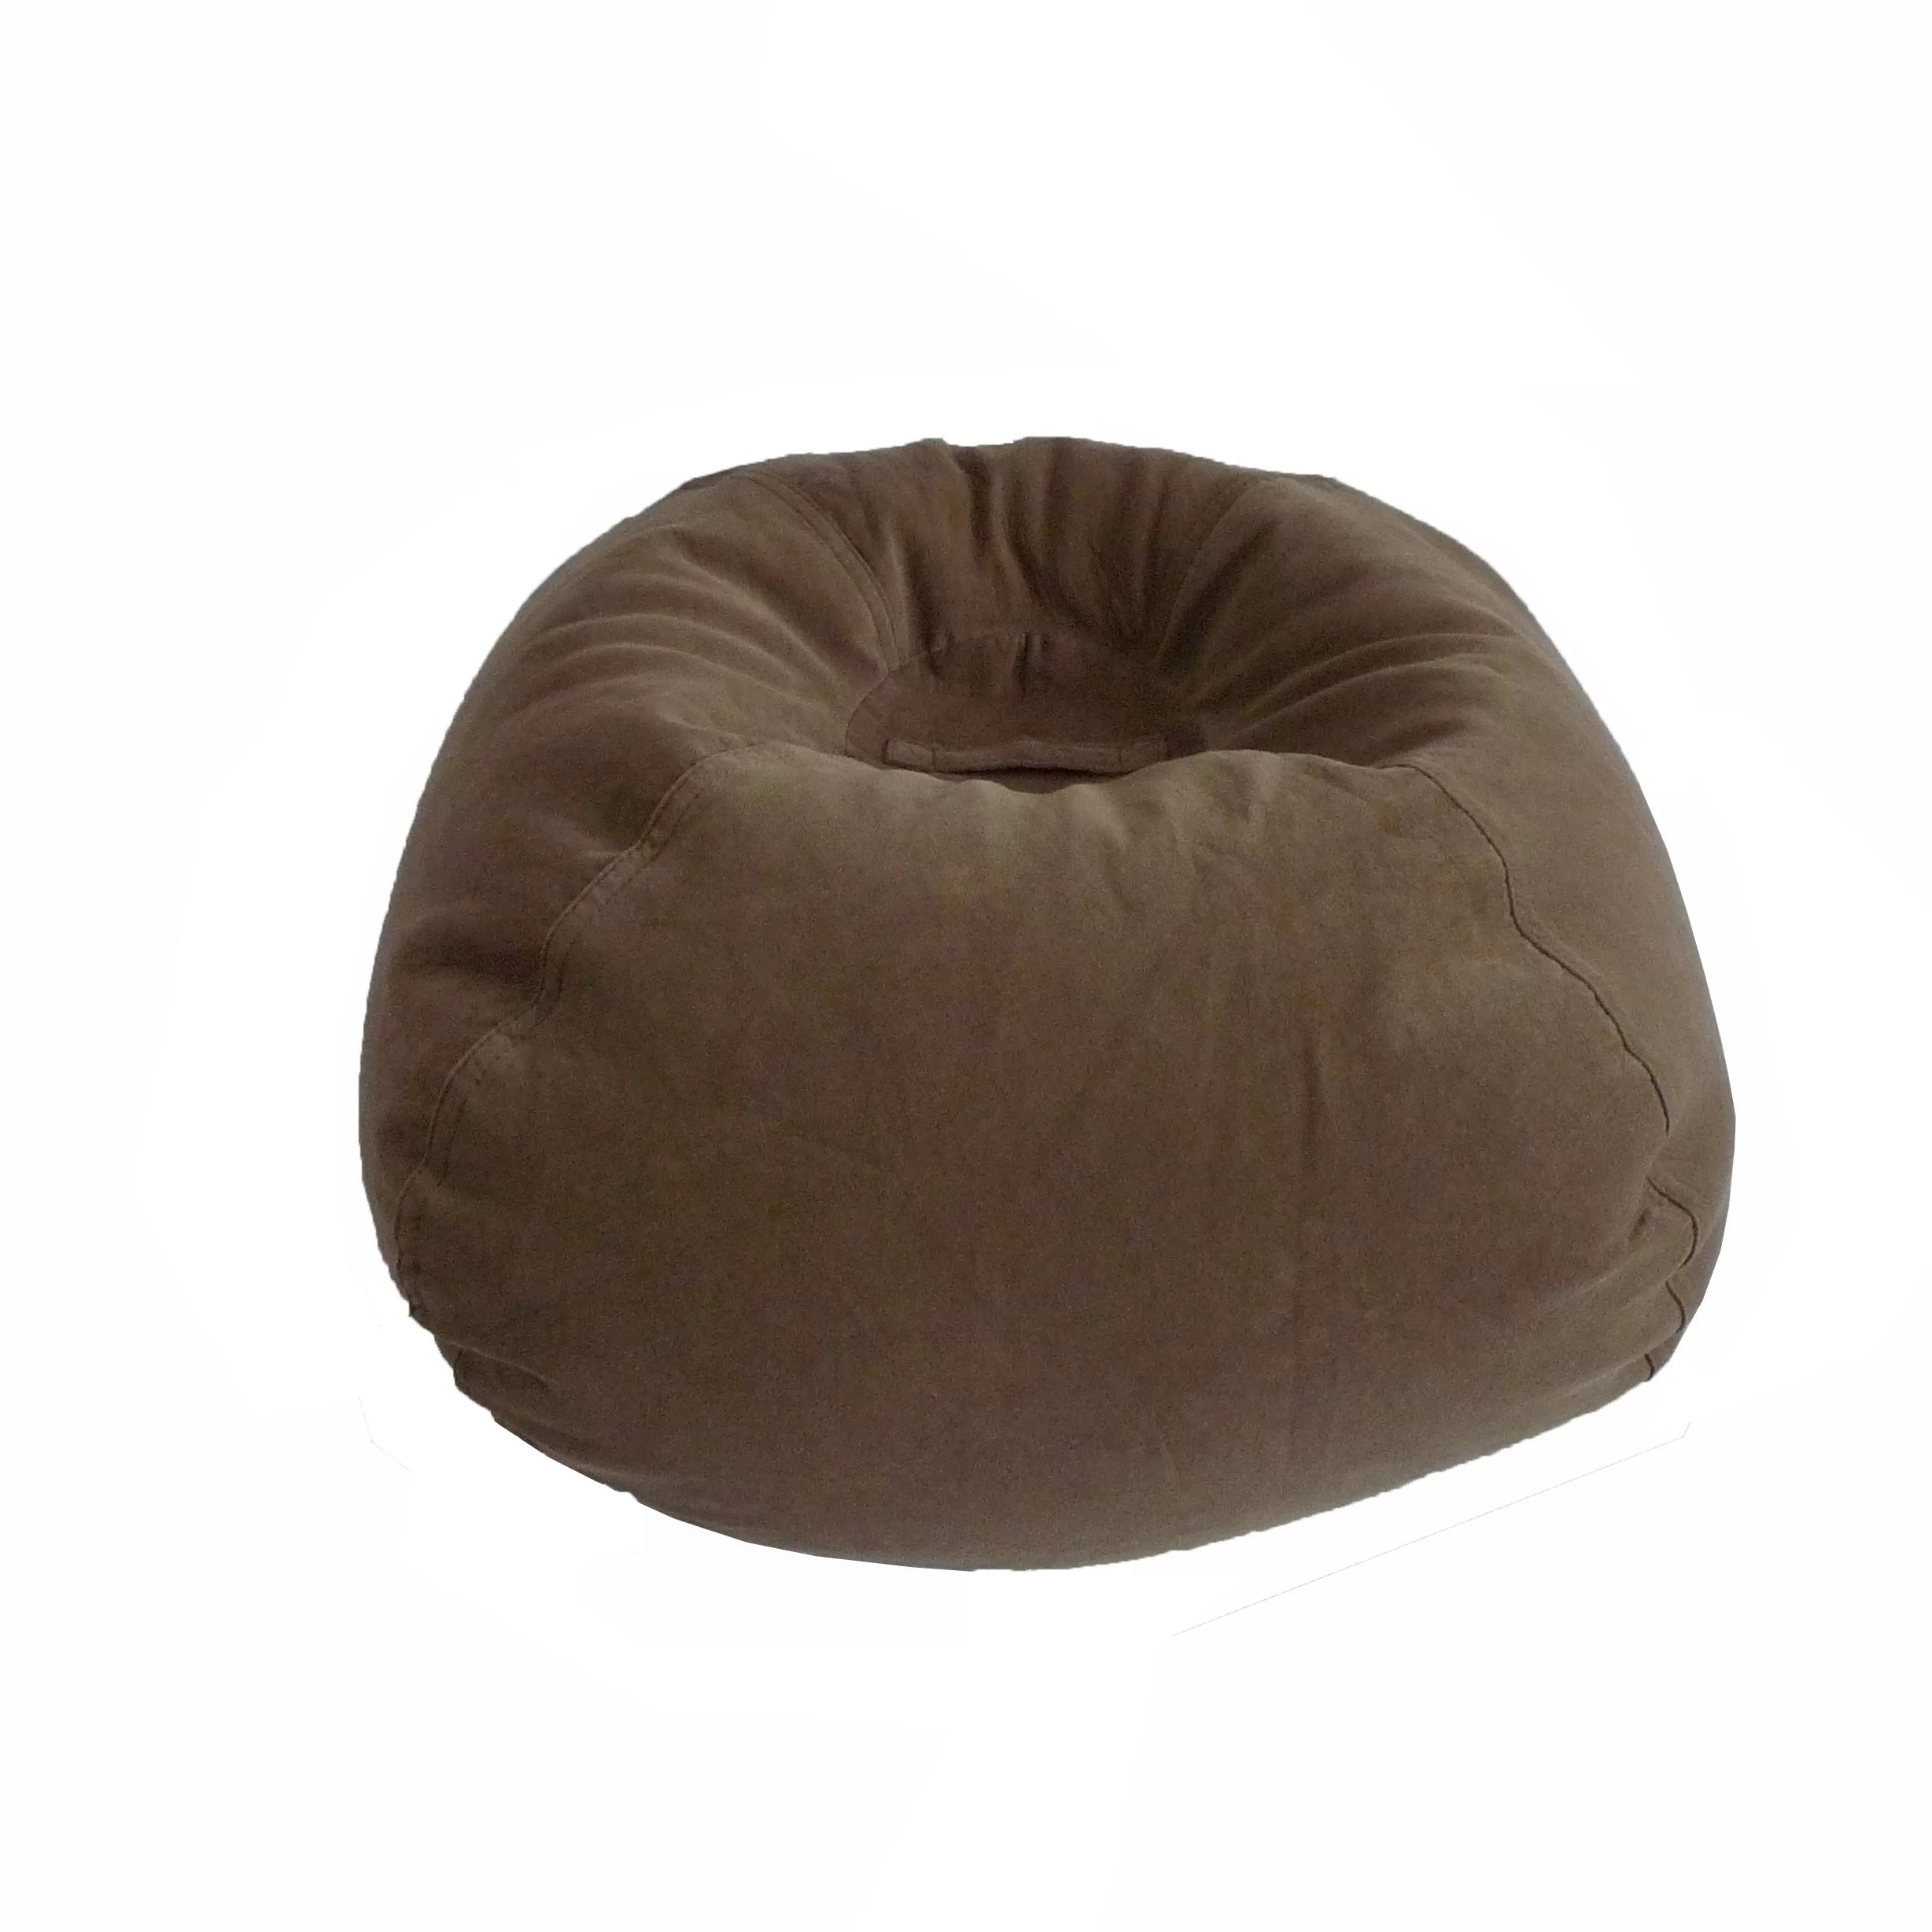 Ll Bean Rocking Chair X Rocker Bean Bag Chair And Reviews Wayfair